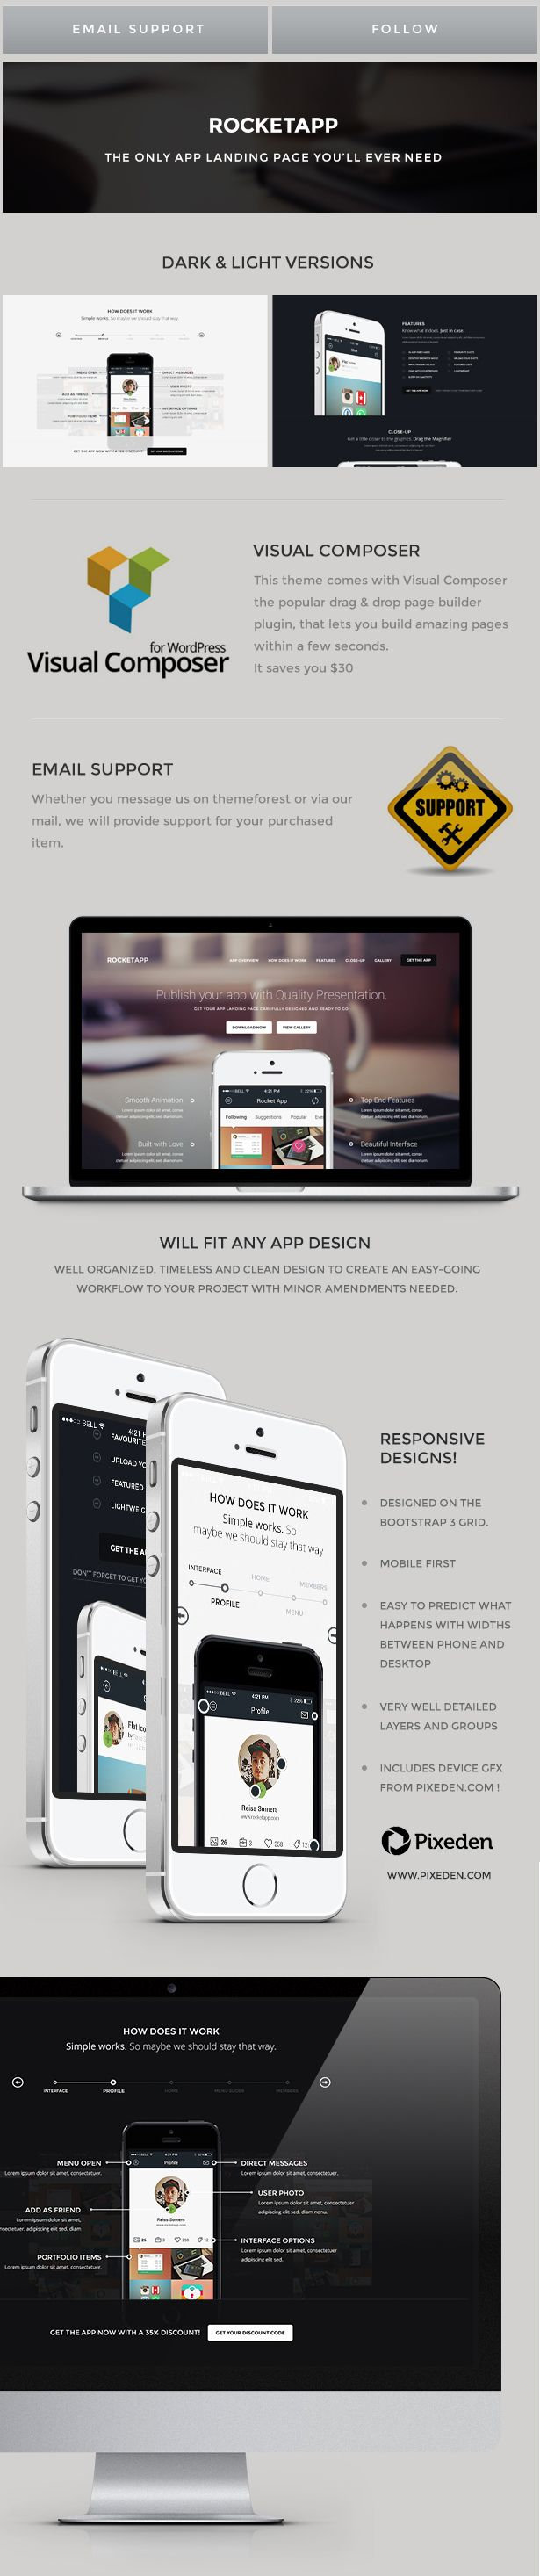 RocketApp is a high quality App Landing WordPress theme that will wow your customers, it has a timeless, spacious design with neutral colour scheme that will fit any kind of app. It is a single pa...